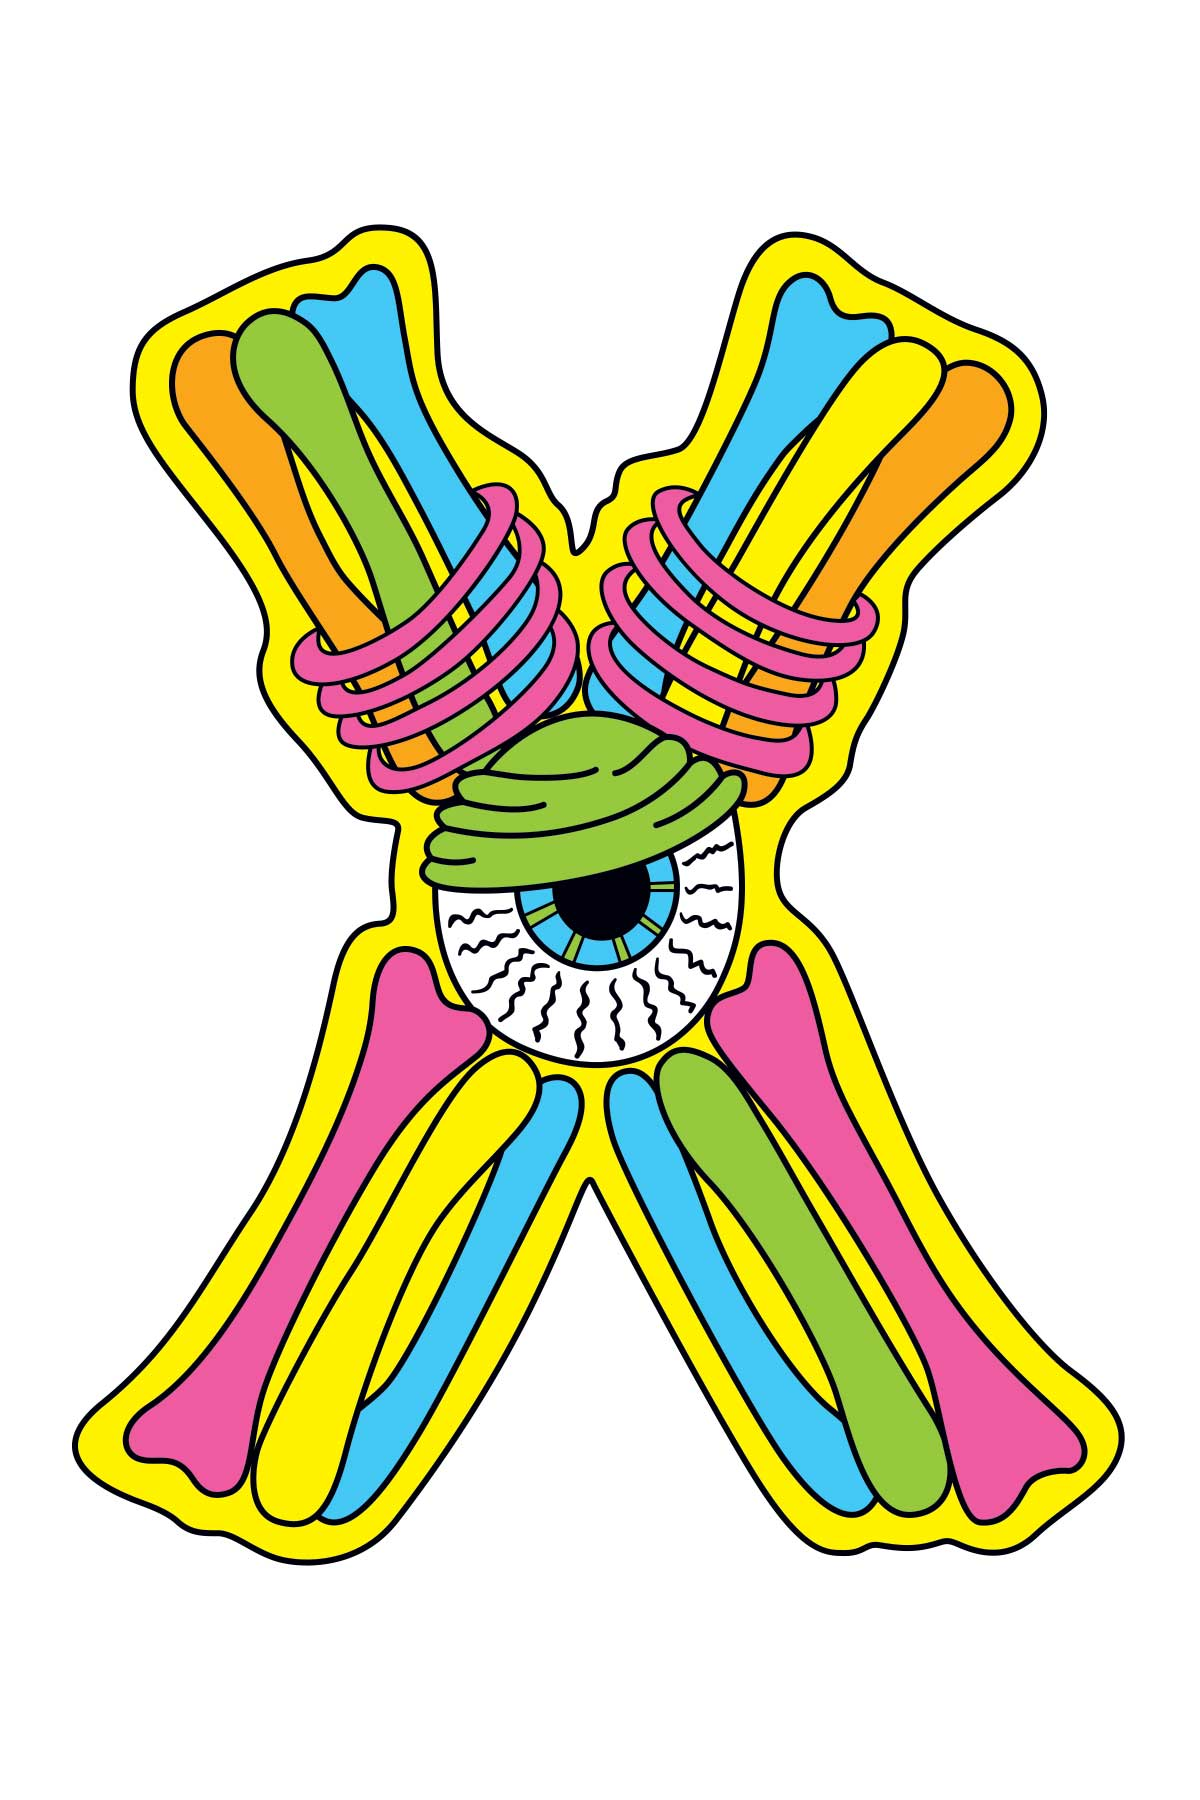 X is for Xavier's X-Ray